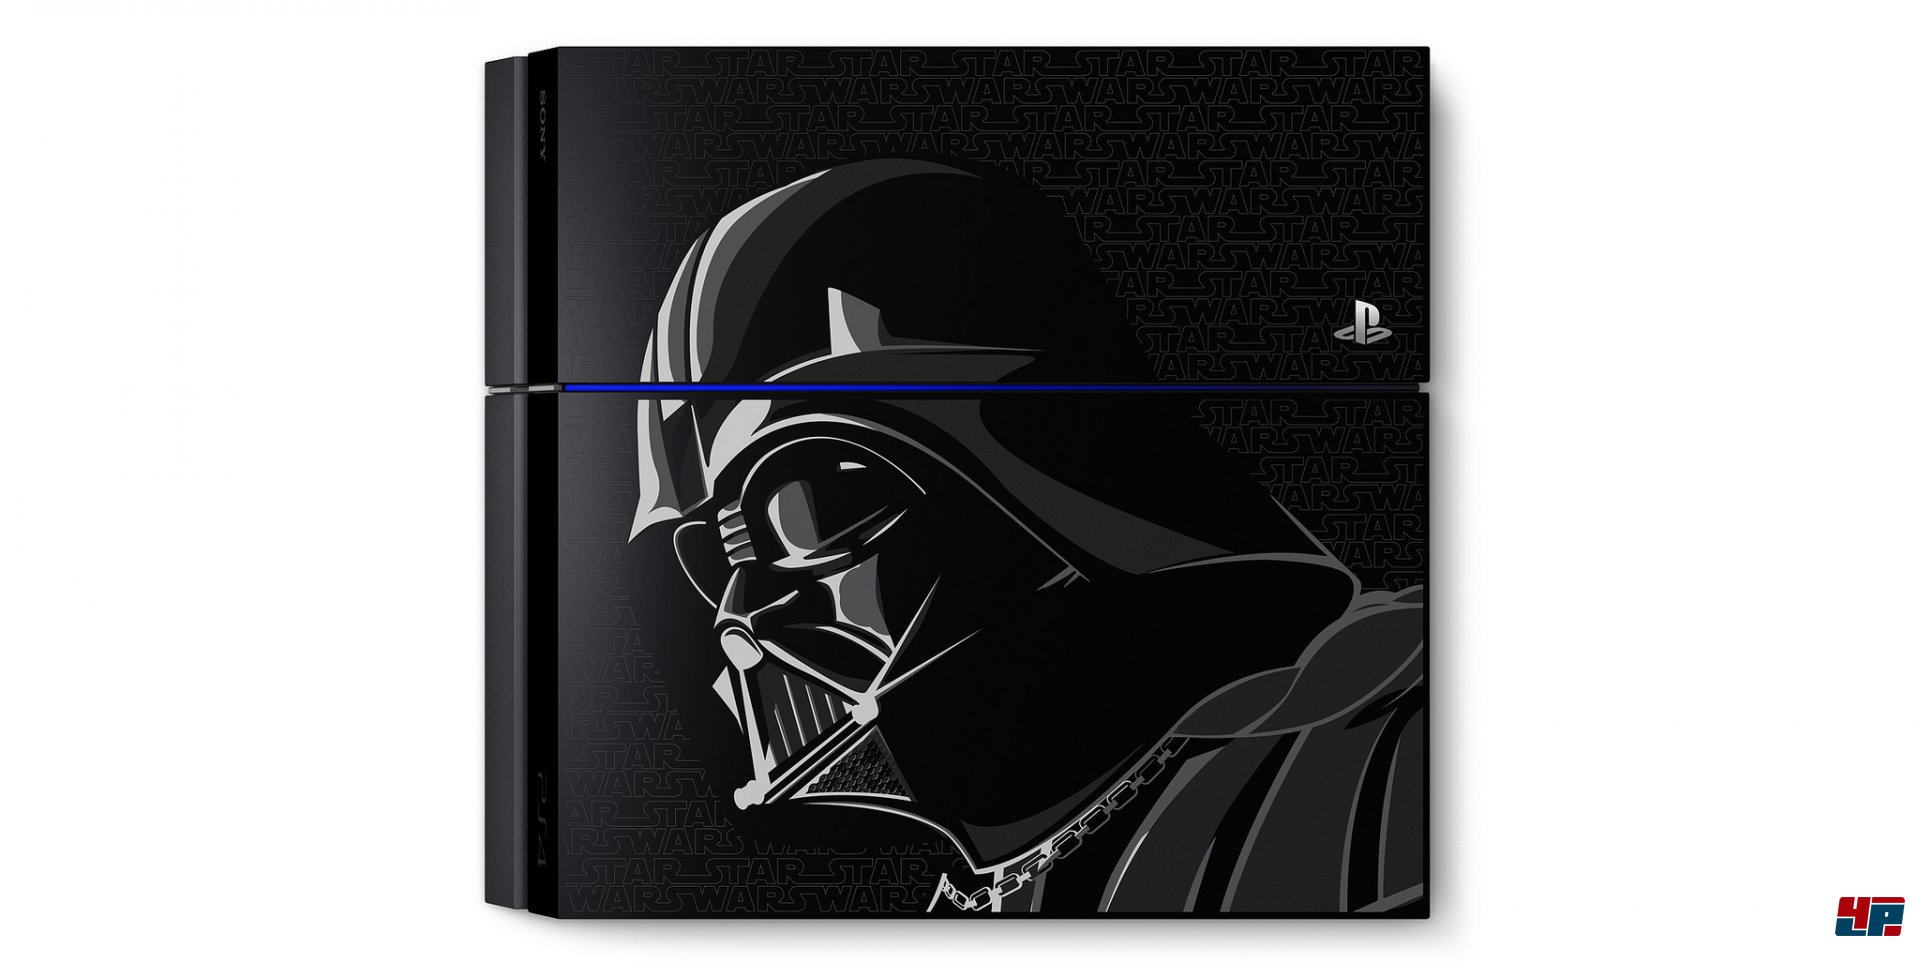 Playstation 4 limited edition im darth vader stil mit 1 for Couch koop ps4